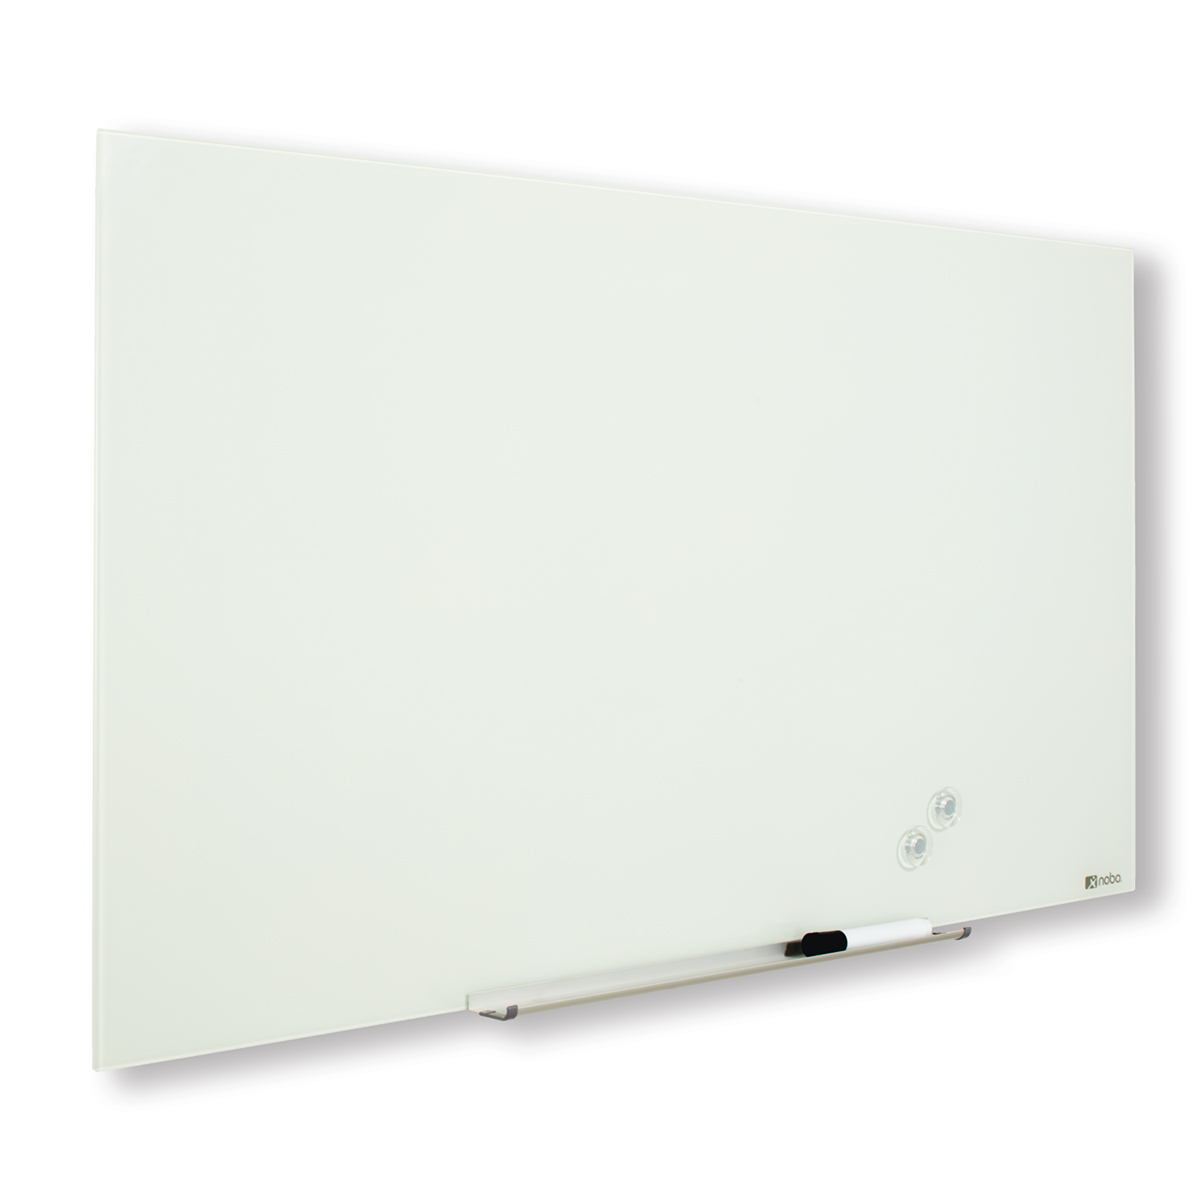 Nobo 1905178 Diamond Glass Whiteboard 1883 x 1059mm